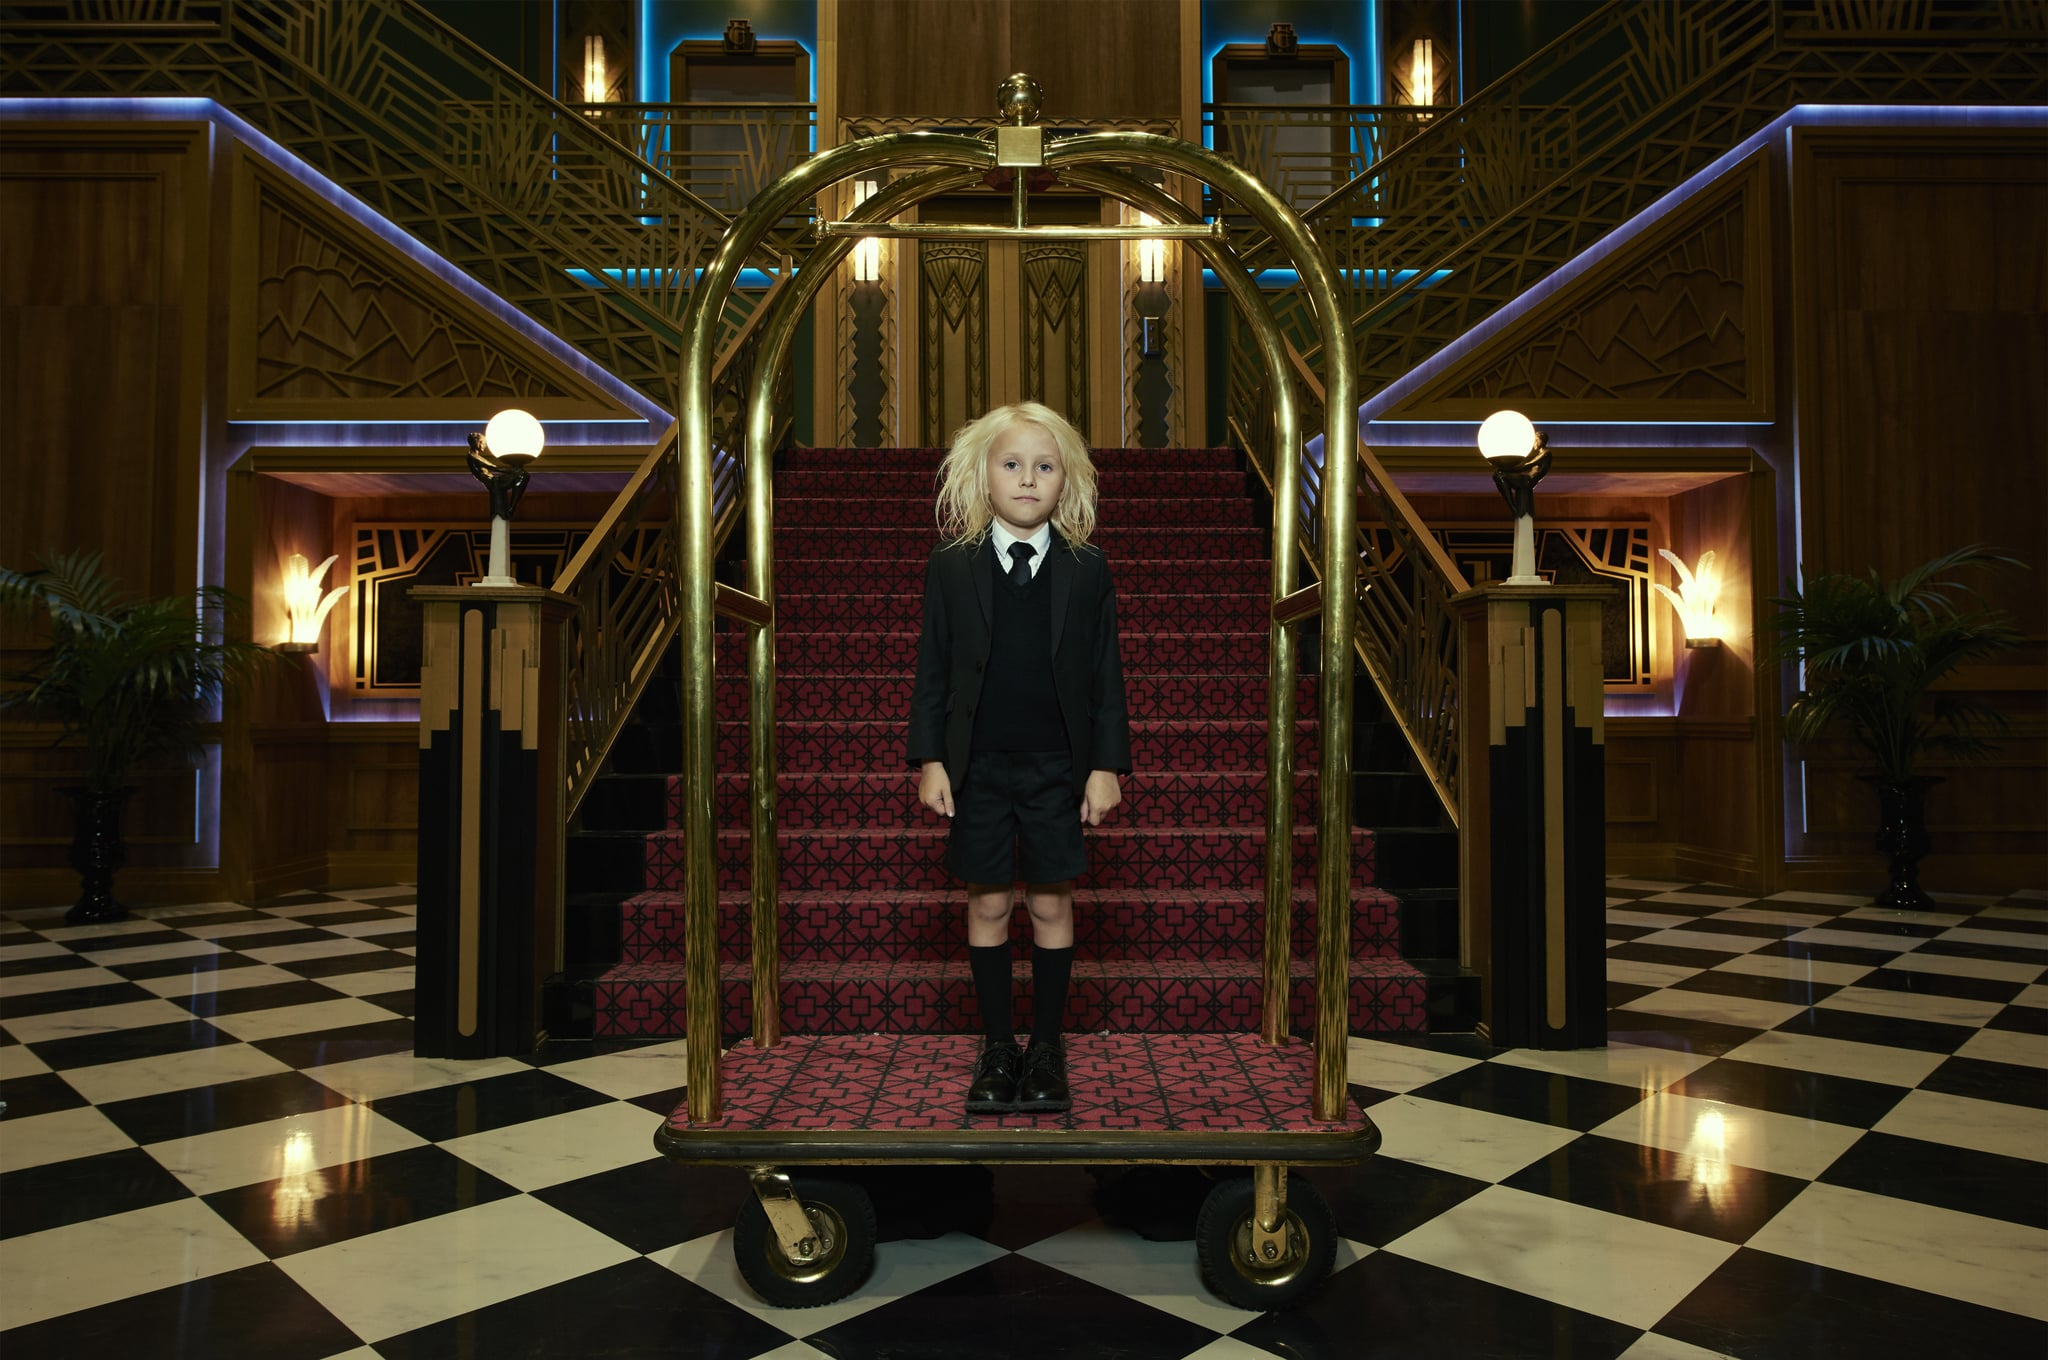 PopsugarEntertainmentAmerican Horror StoryAmerican Horror Story Season 6 Theories About Children7 Theories For How American Horror Story Will Involve Children in Season 6July 10, 2016 by Ryan Roschke57 SharesThe sixth season of American Horror Story is coming, but there's a catch. We're just a couple of months away from the premiere, and we have barely any information about the season. All we really have are a few sparse tidbits about the theme, a few general details about the season, a mysterious new image, and an unusually early premiere date. At this point, we're grasping at straws. While we wait for more information, we've got our theories to keep us warm. We've come up with a list of general theories, but seeing as how Ryan Murphy hinted about the incorporation of children in season six, we've brewed a fresh batch of ideas for where the show could take us next.American Horror Story: Boarding School — Now, this one idea doesn't come out of nowhere. Diehard fans will of course remember that casual refere - 웹